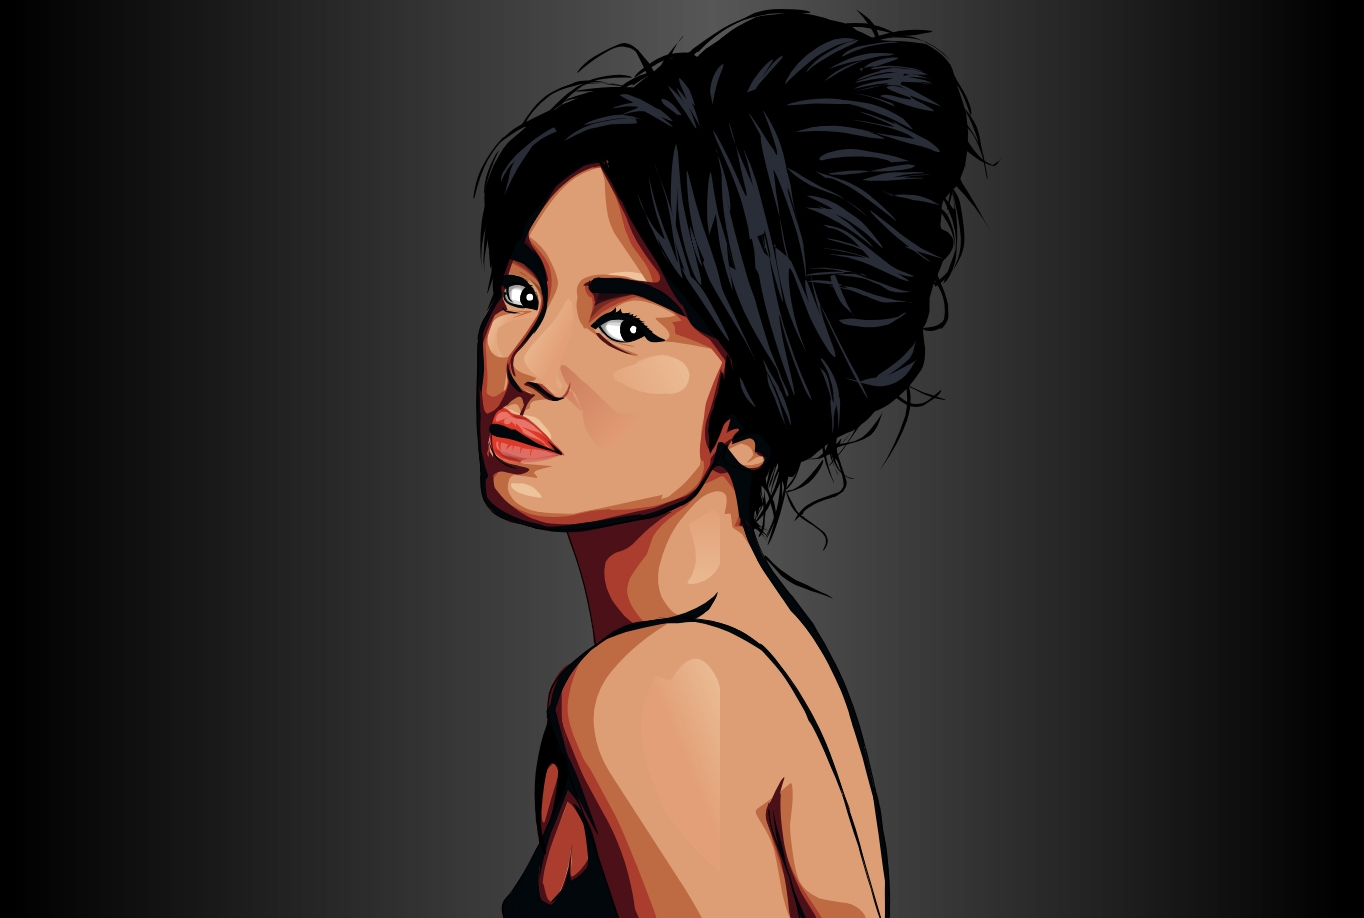 I will draw realistic cartoon vector portrait image of you